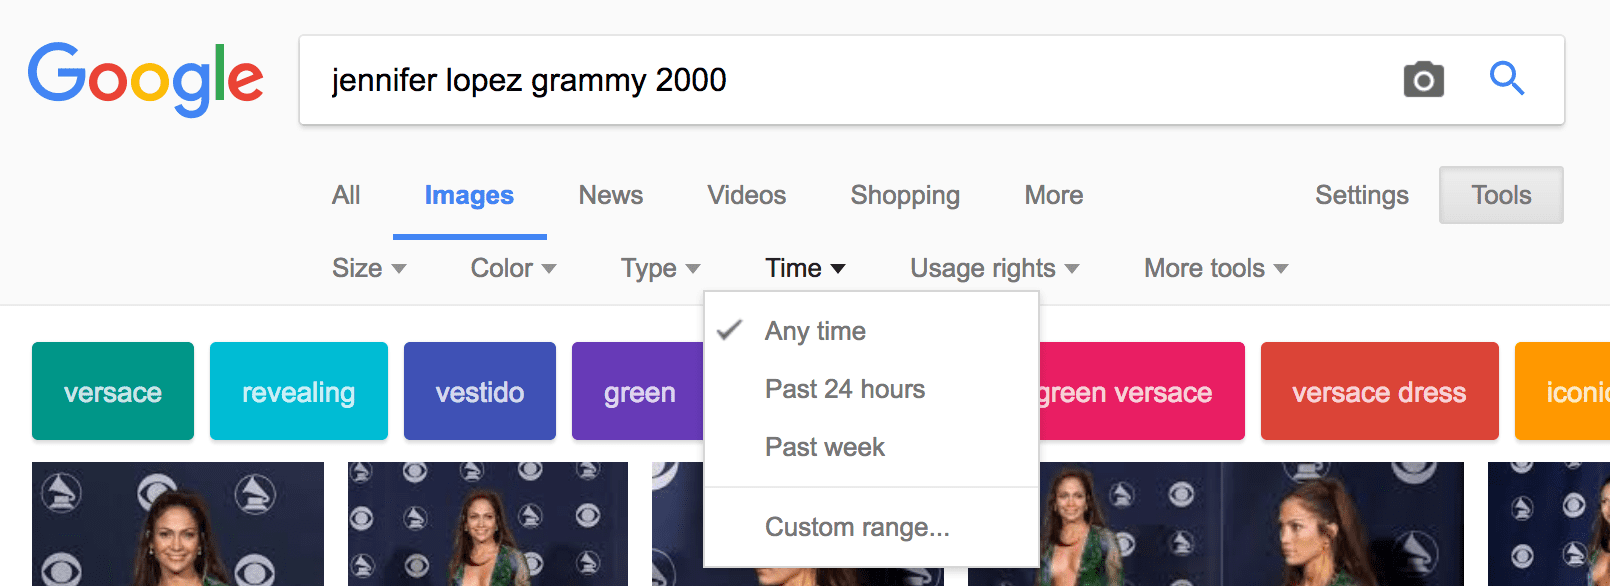 Google Images can sort images by time of post by clicking on the tools tab and choosing Time